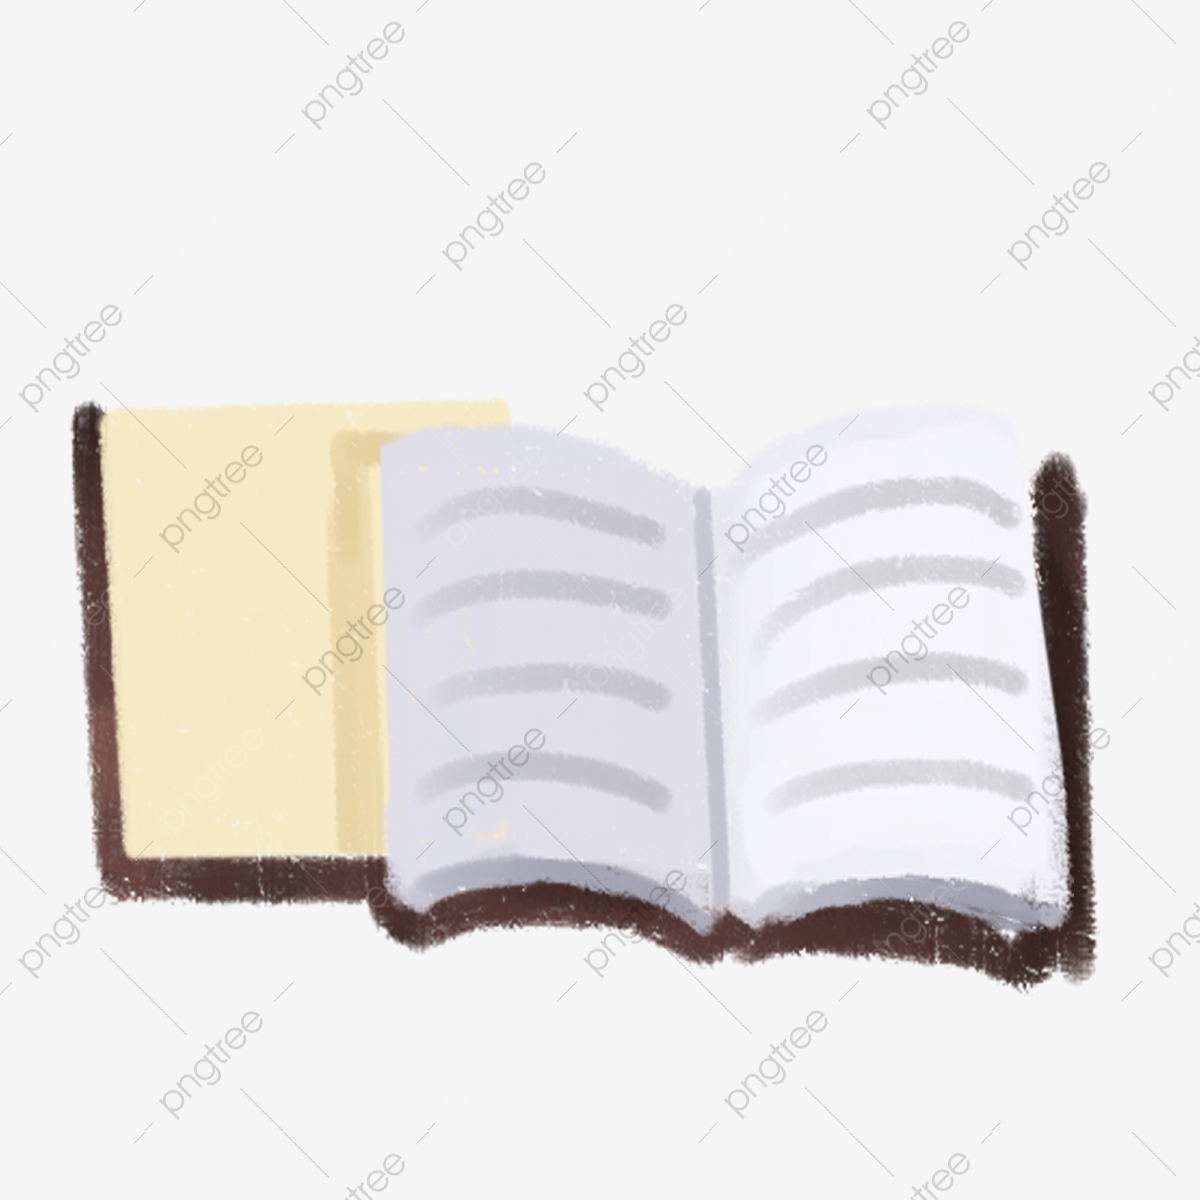 Textbook clipart exercise book. A students student